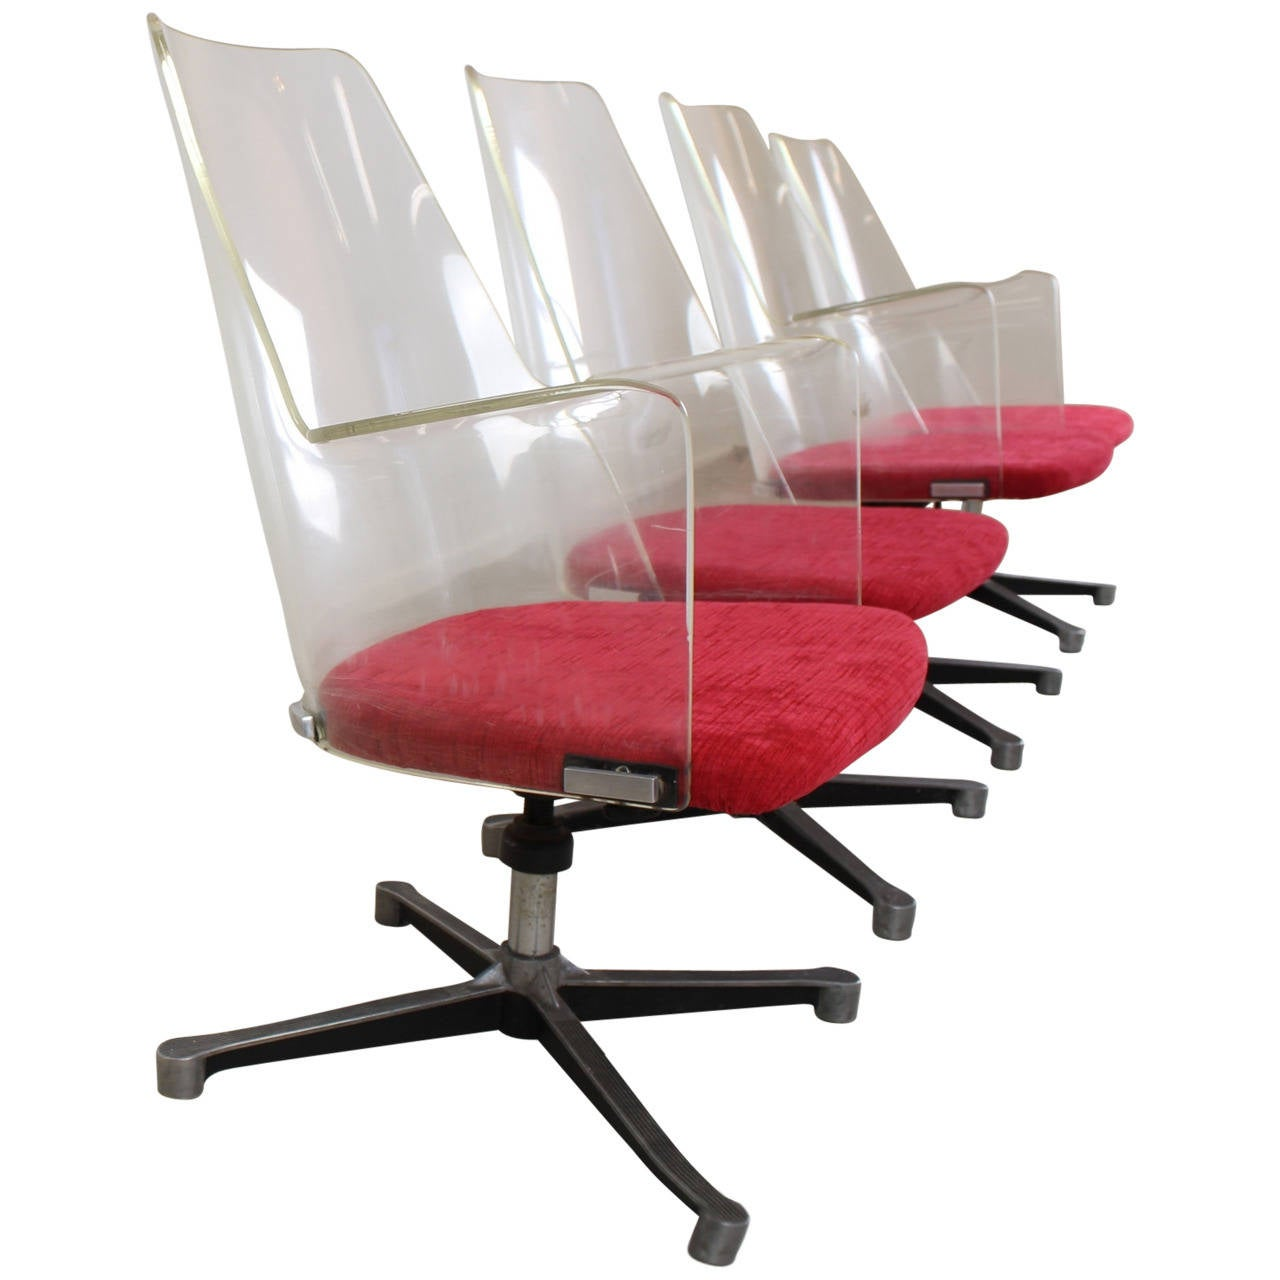 Original Mad Man Style American Lucite fice Chairs at